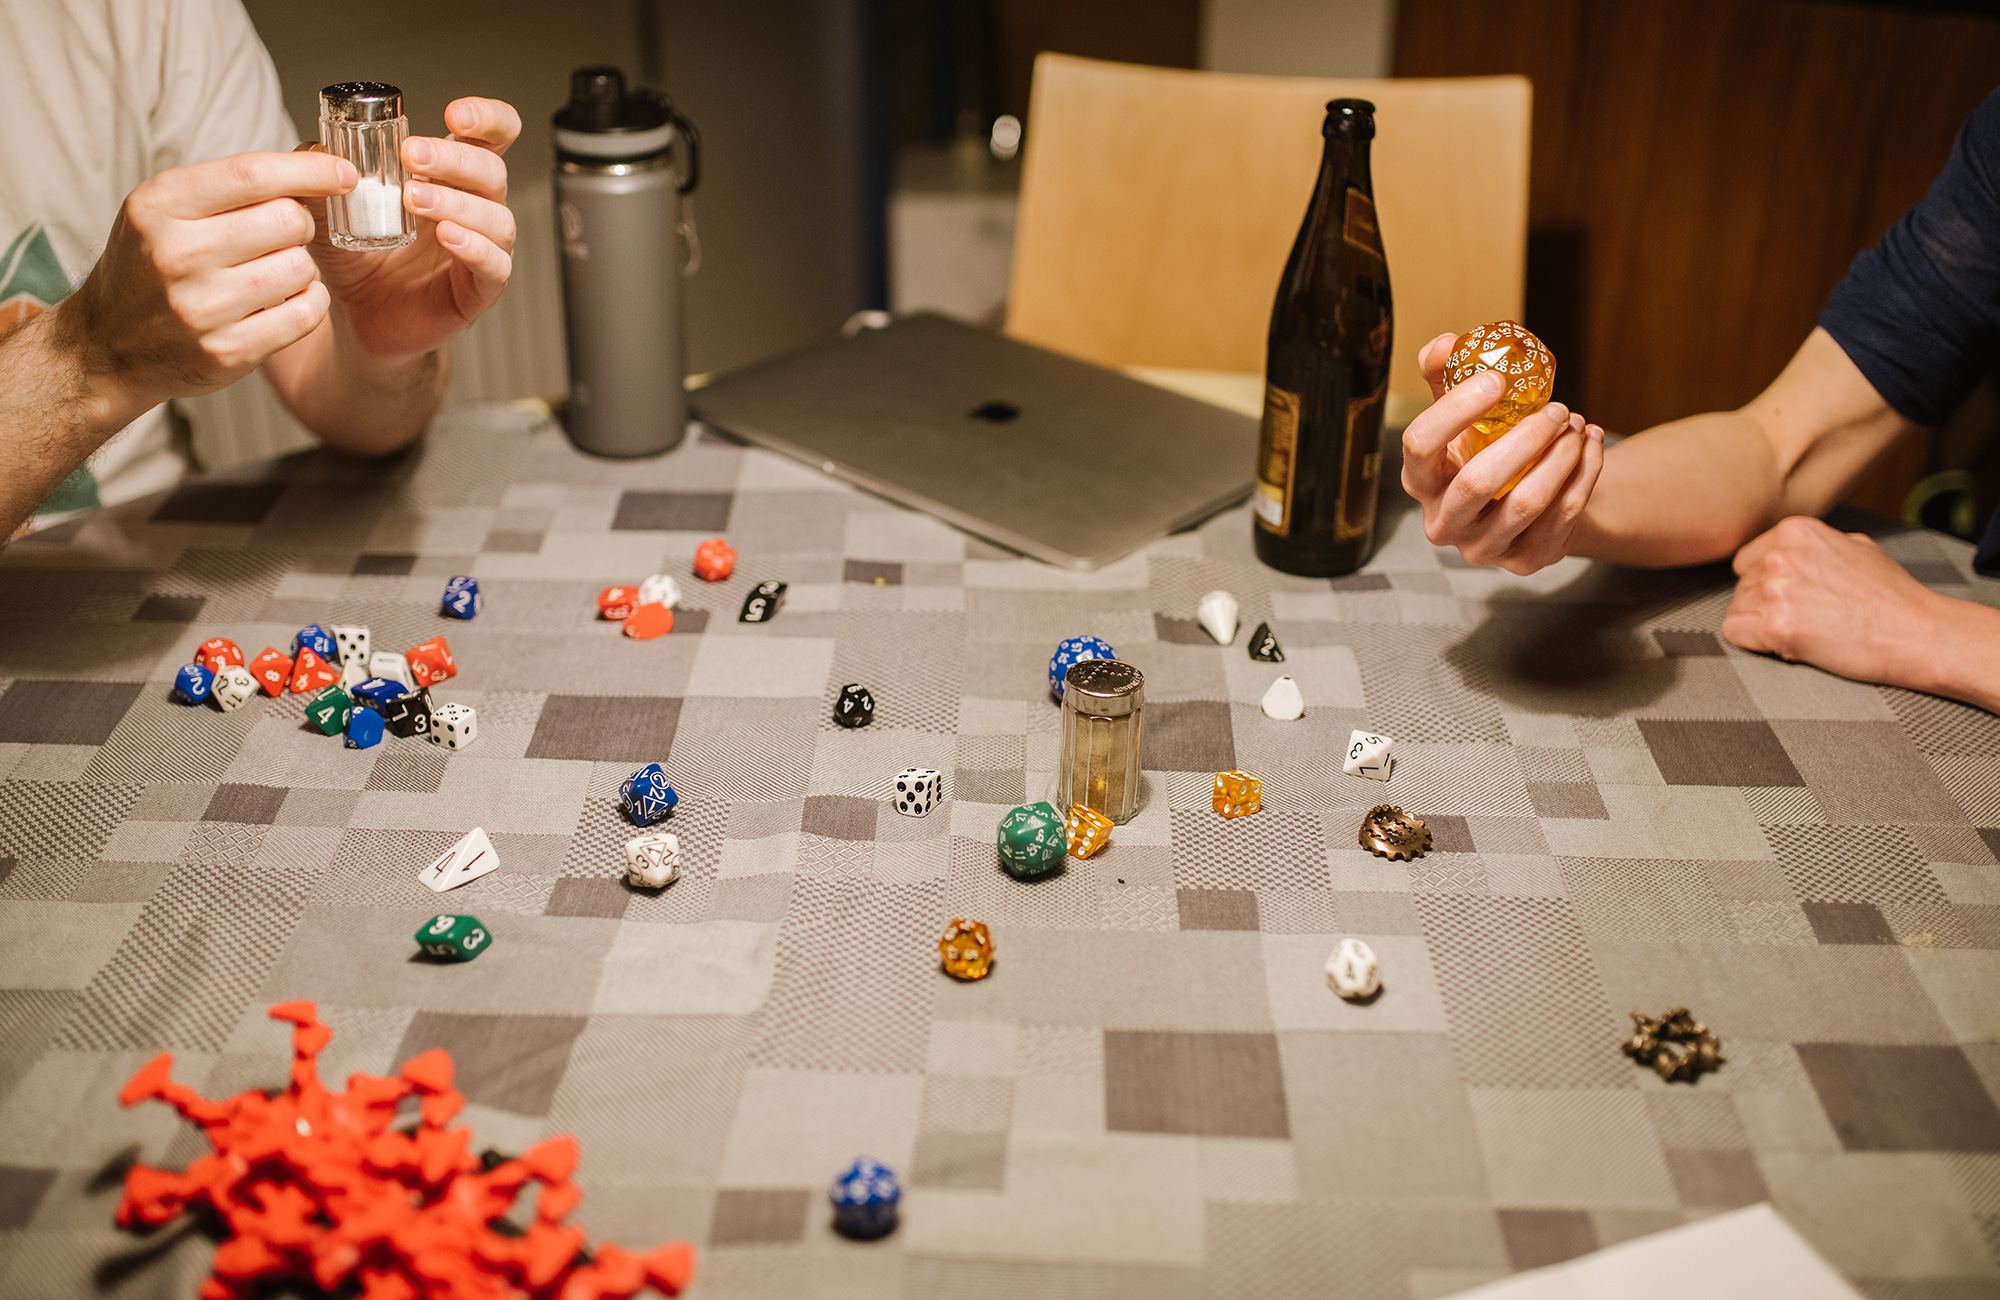 Photos showing mathematicians socializing and playing games